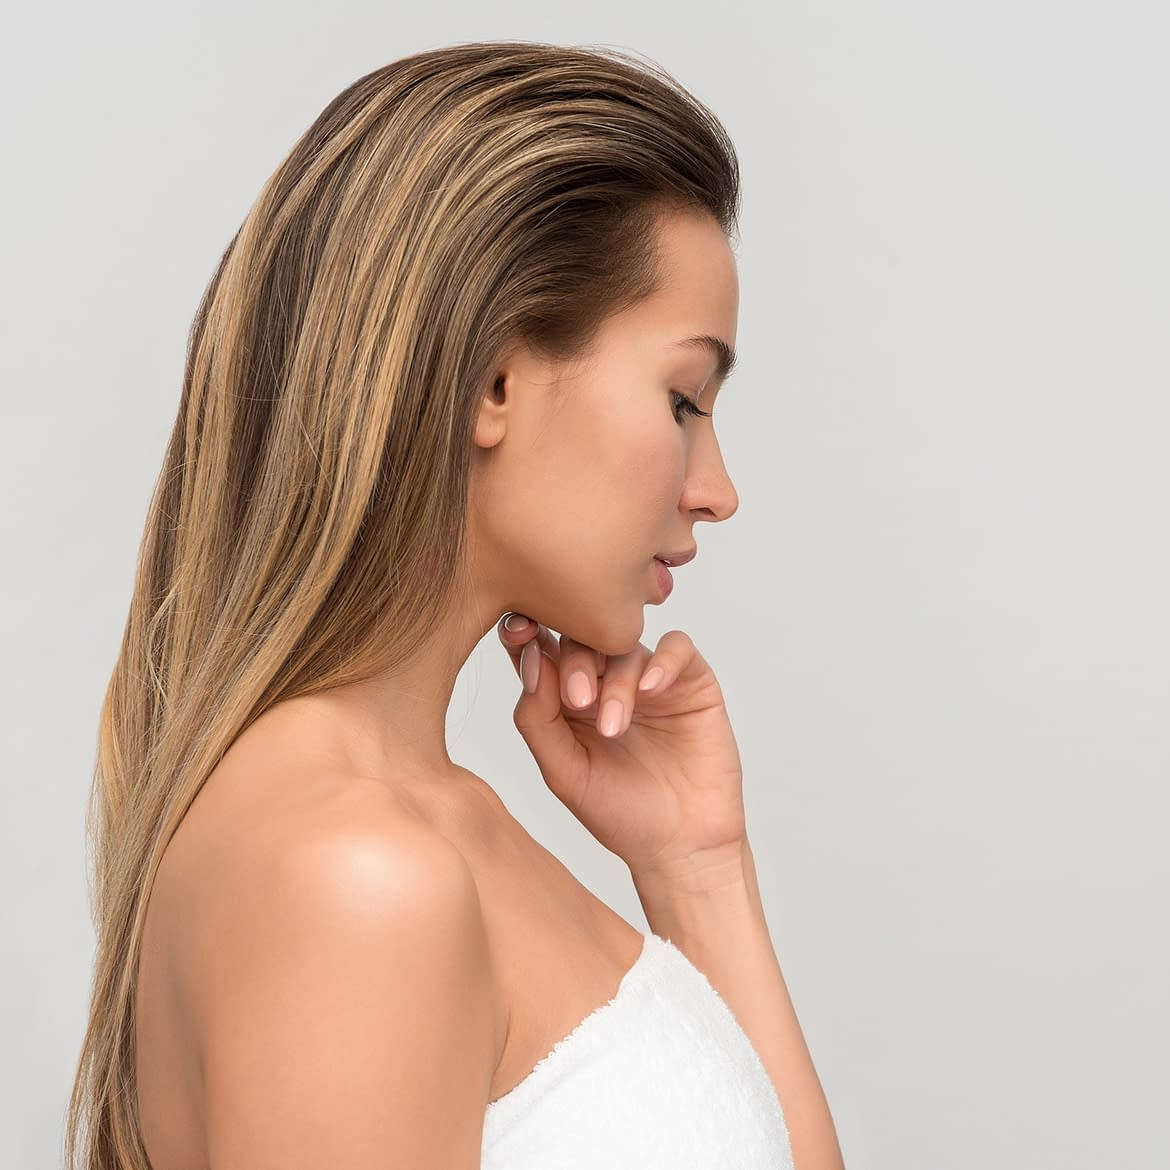 What can hard water do to your hair?